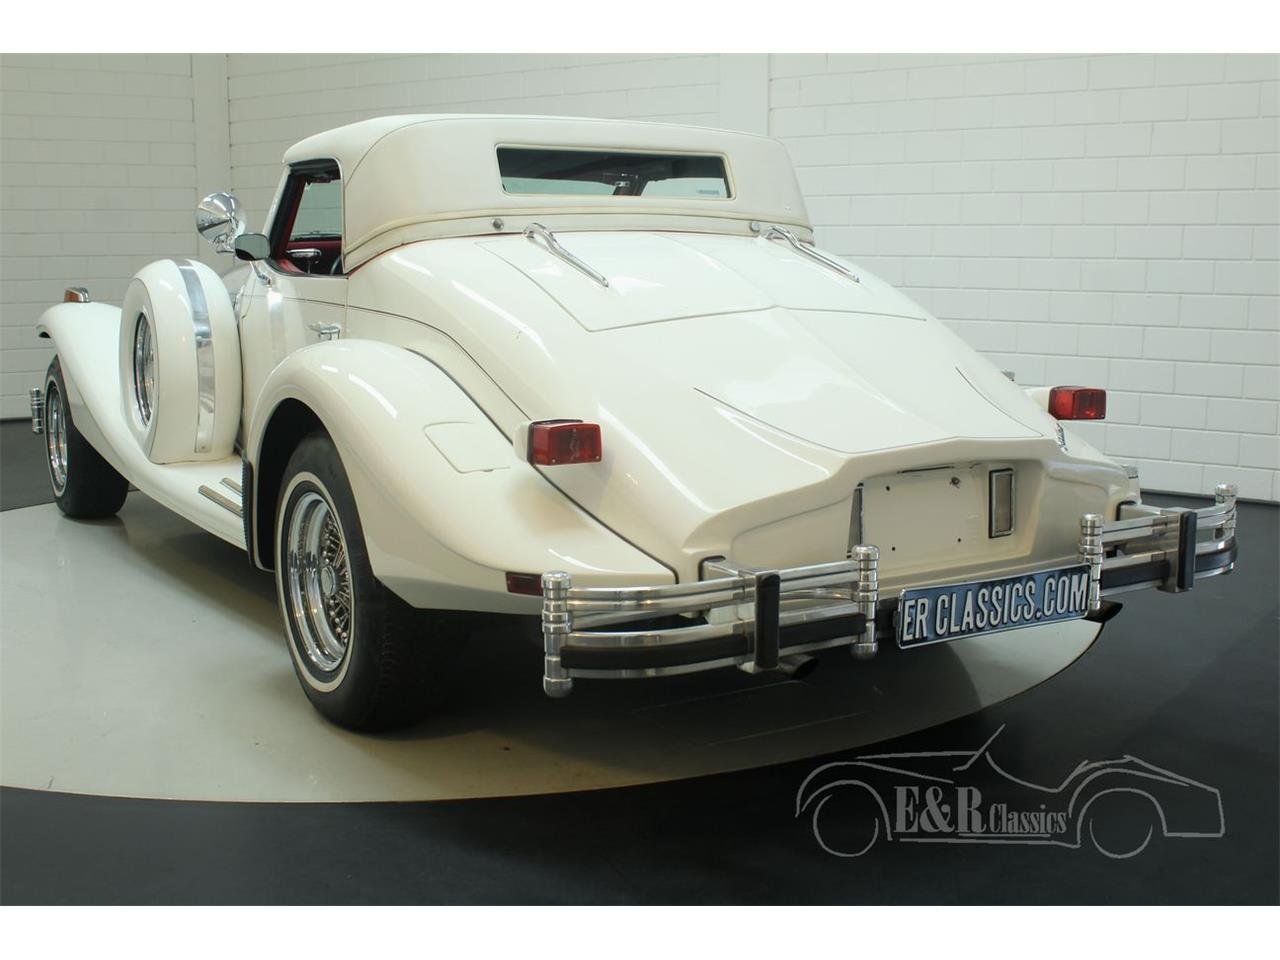 Large Picture of '82 Excalibur Series IV Phaeton - $78,450.00 Offered by E & R Classics - Q3GF